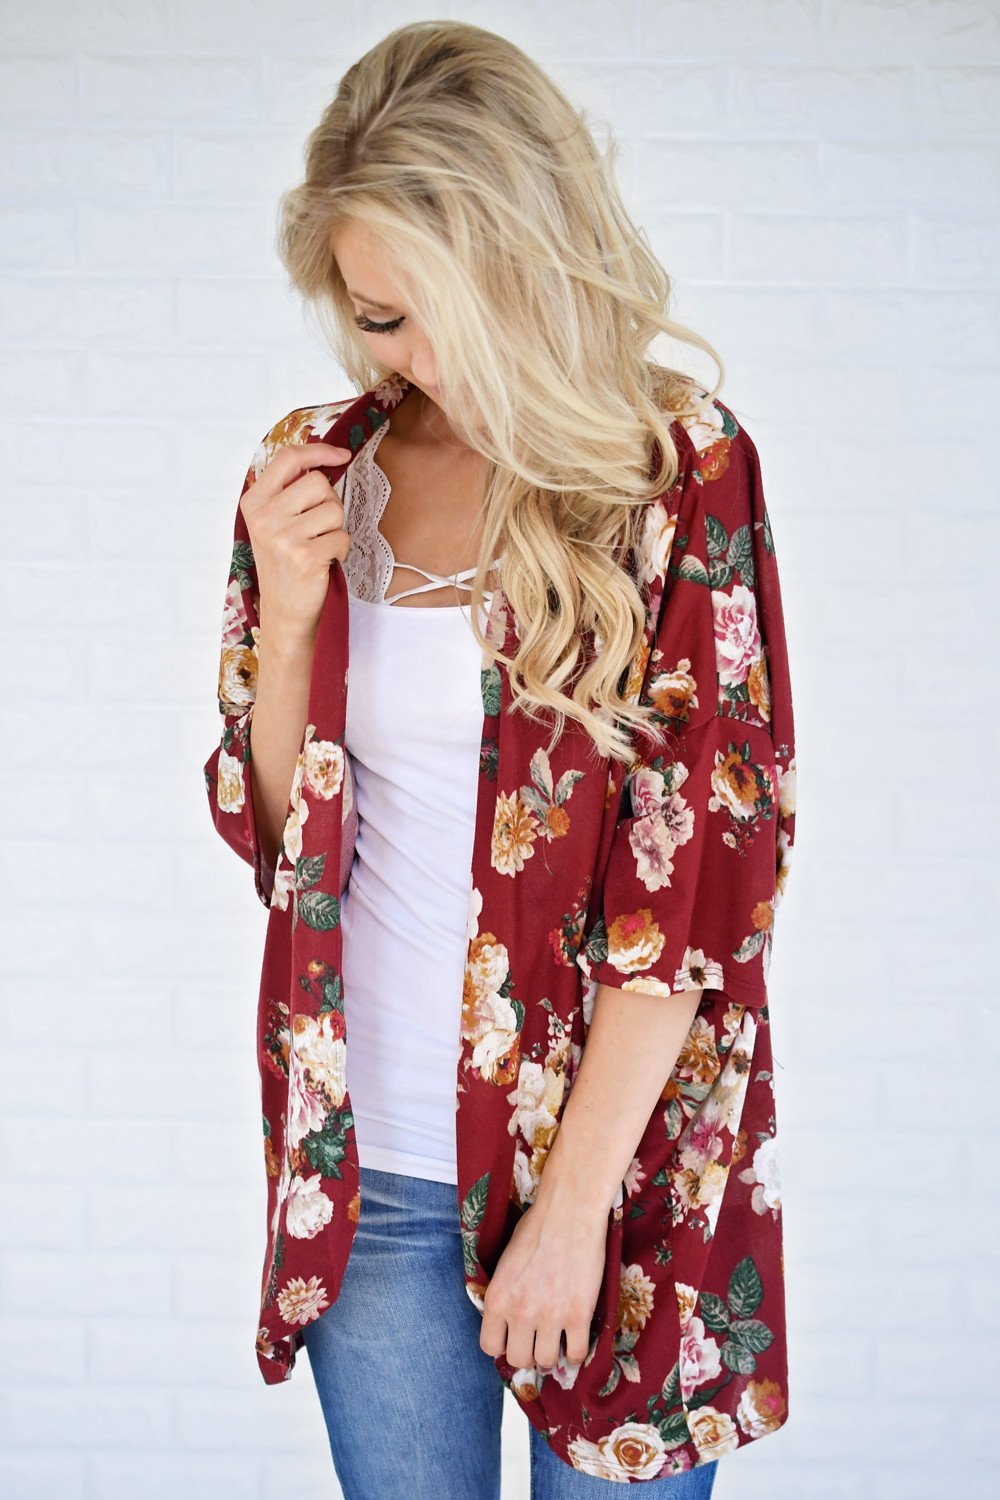 Find My Way Floral Cardigan - Burgundy